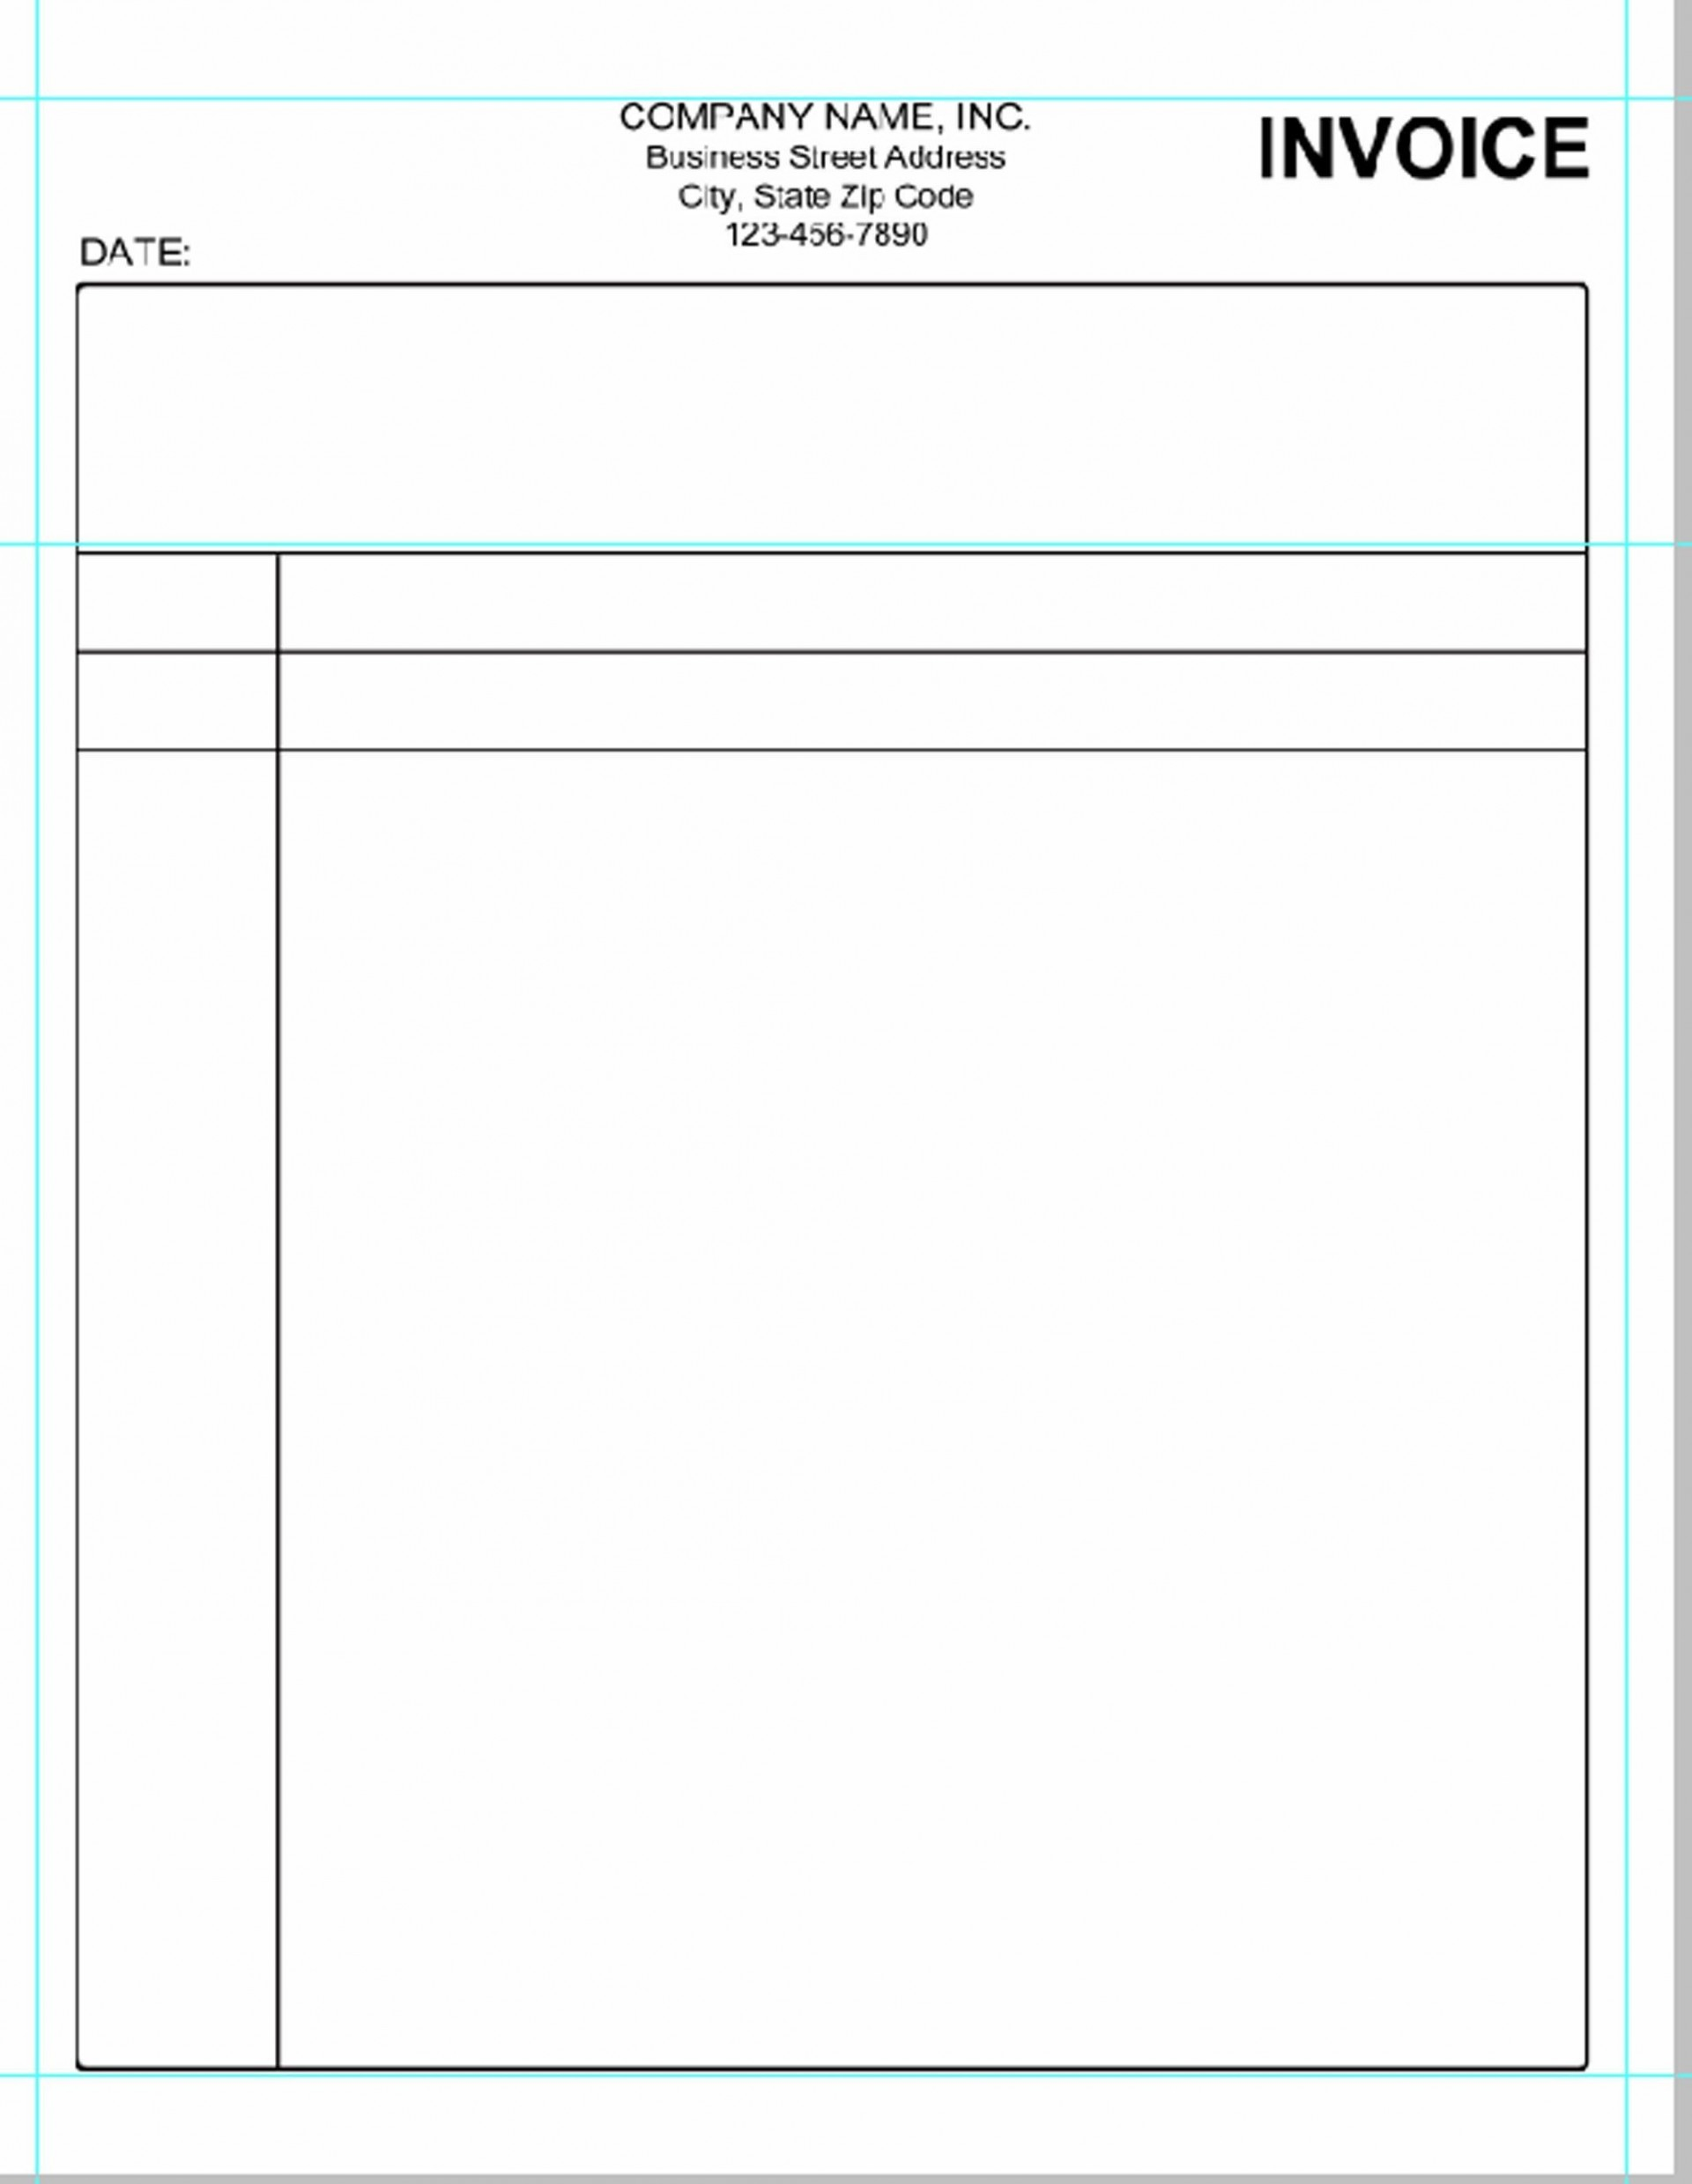 002 Formidable Receipt Template Microsoft Word High Definition  Invoice Free Money Blank1920